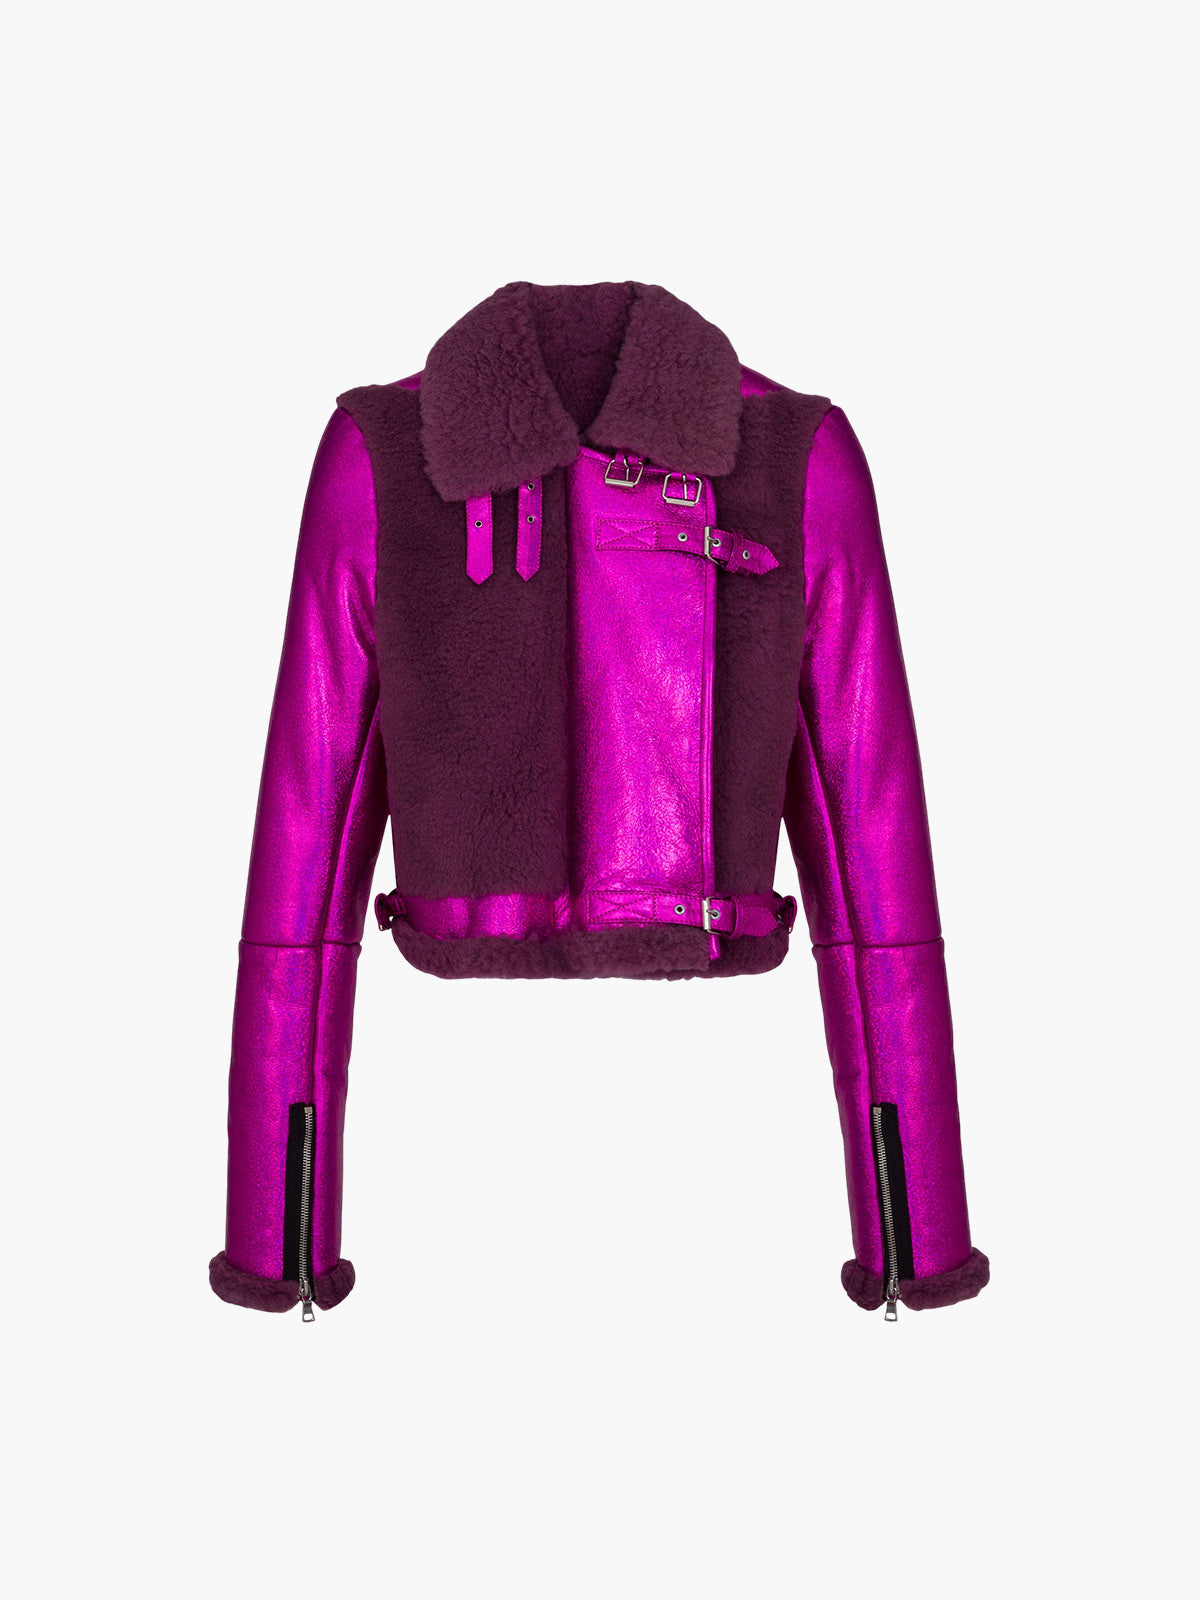 Alanis Jacket | Fuchsia Purple Alanis Jacket | Fuchsia Purple